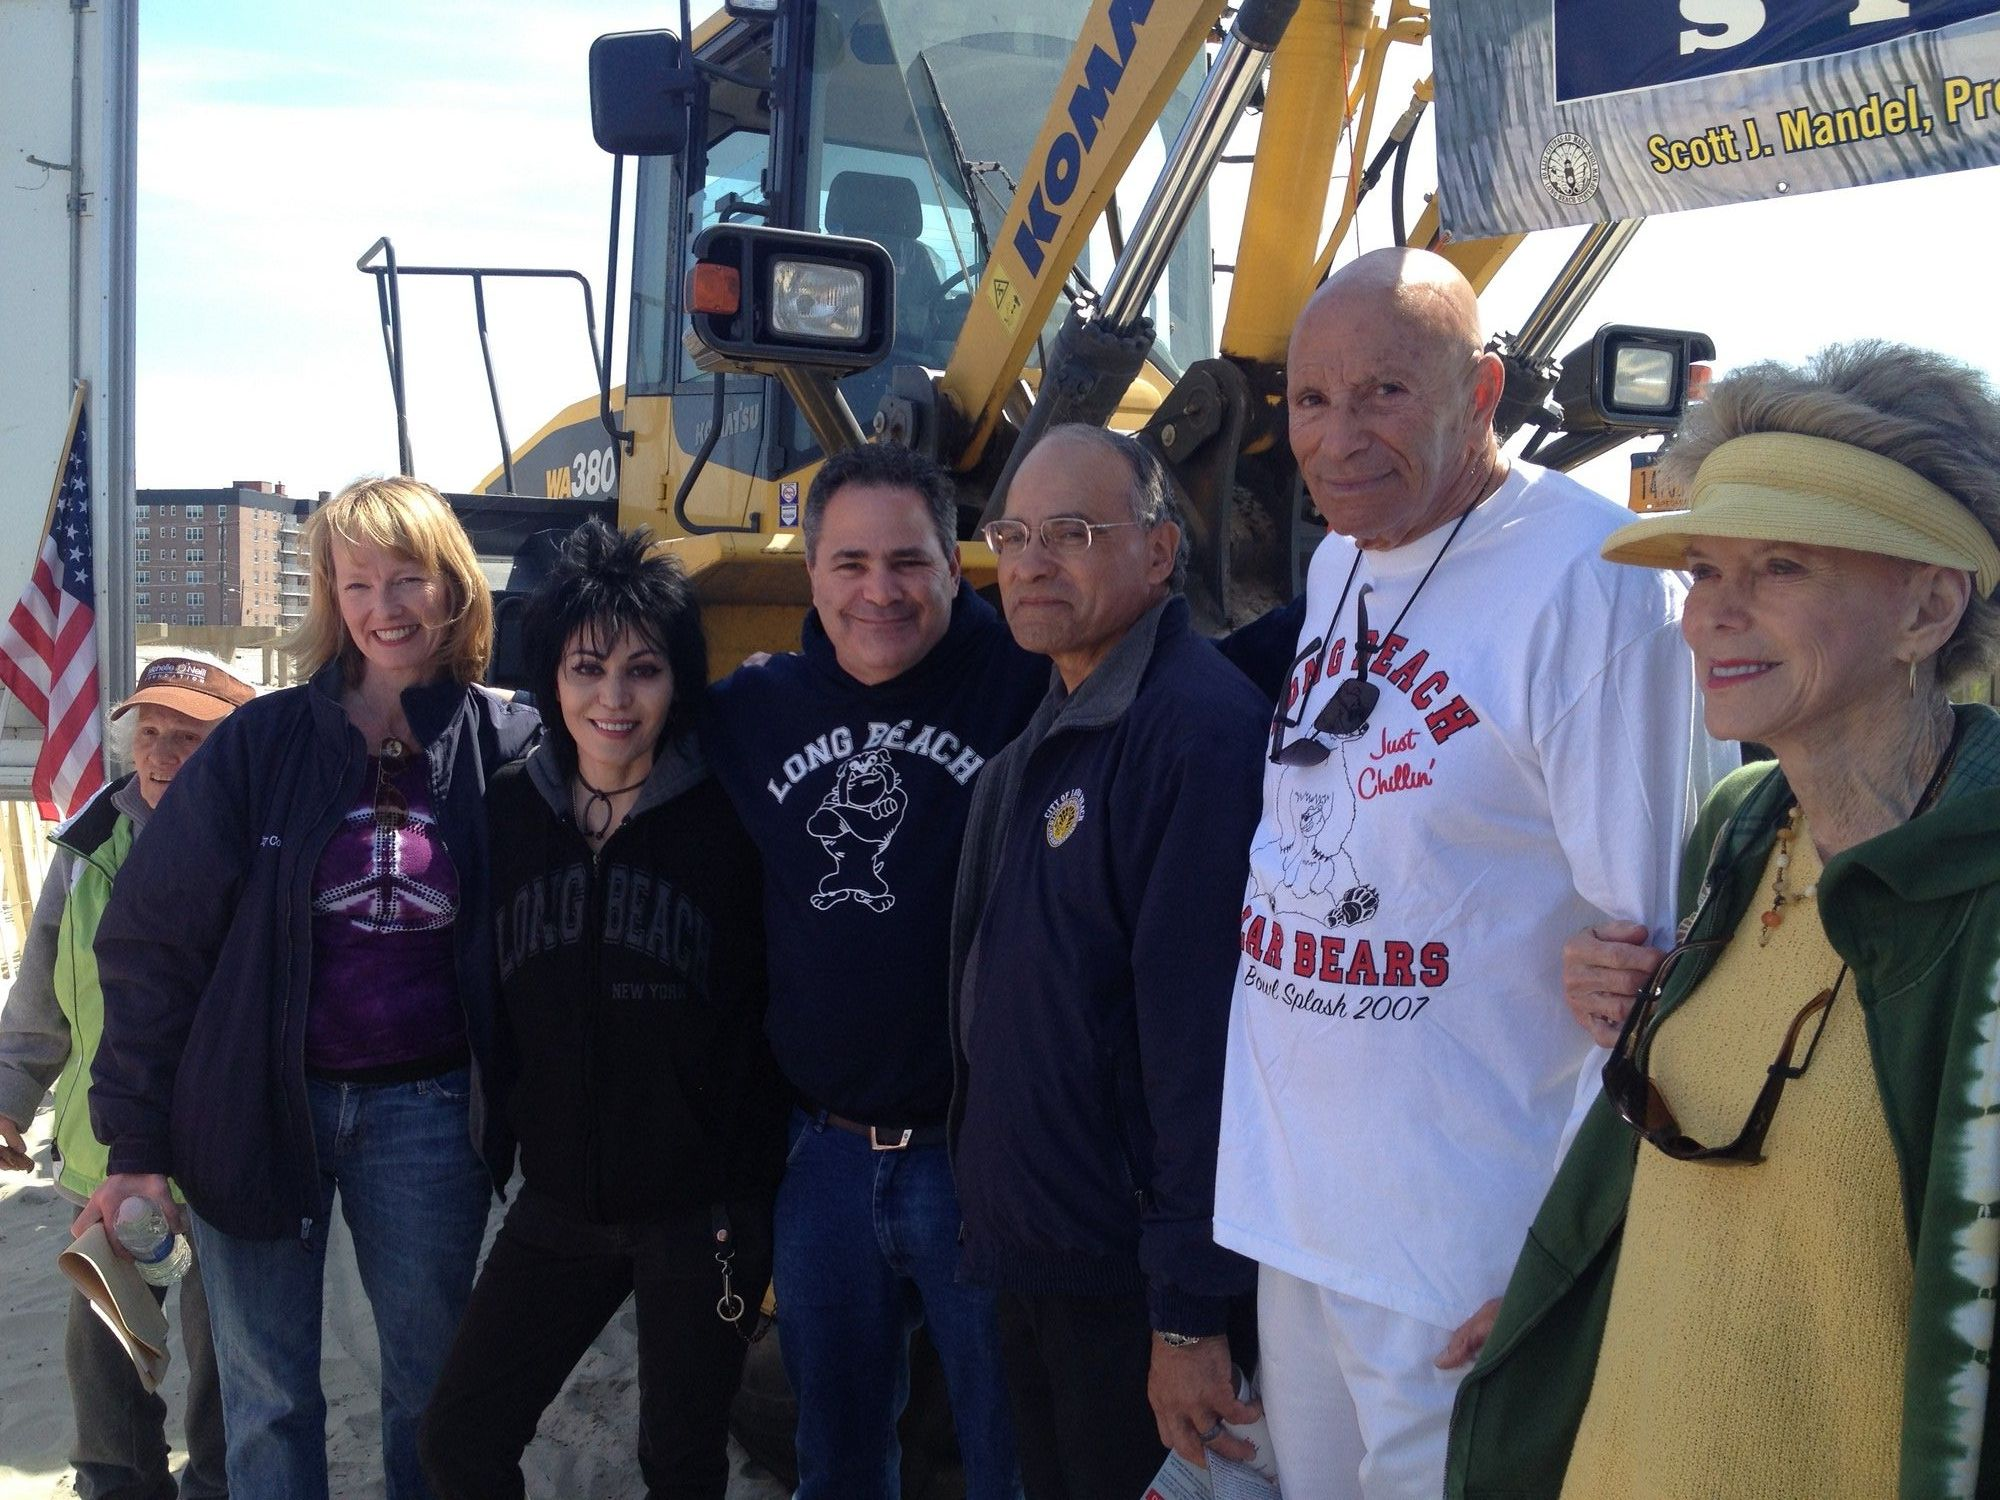 Councilwoman Eileen Goggin, left, Joan Jett, radio host Halftime Howie, Councilman Len Torres, Assemblyman Harvey Weisenberg and his wife, Ellen.